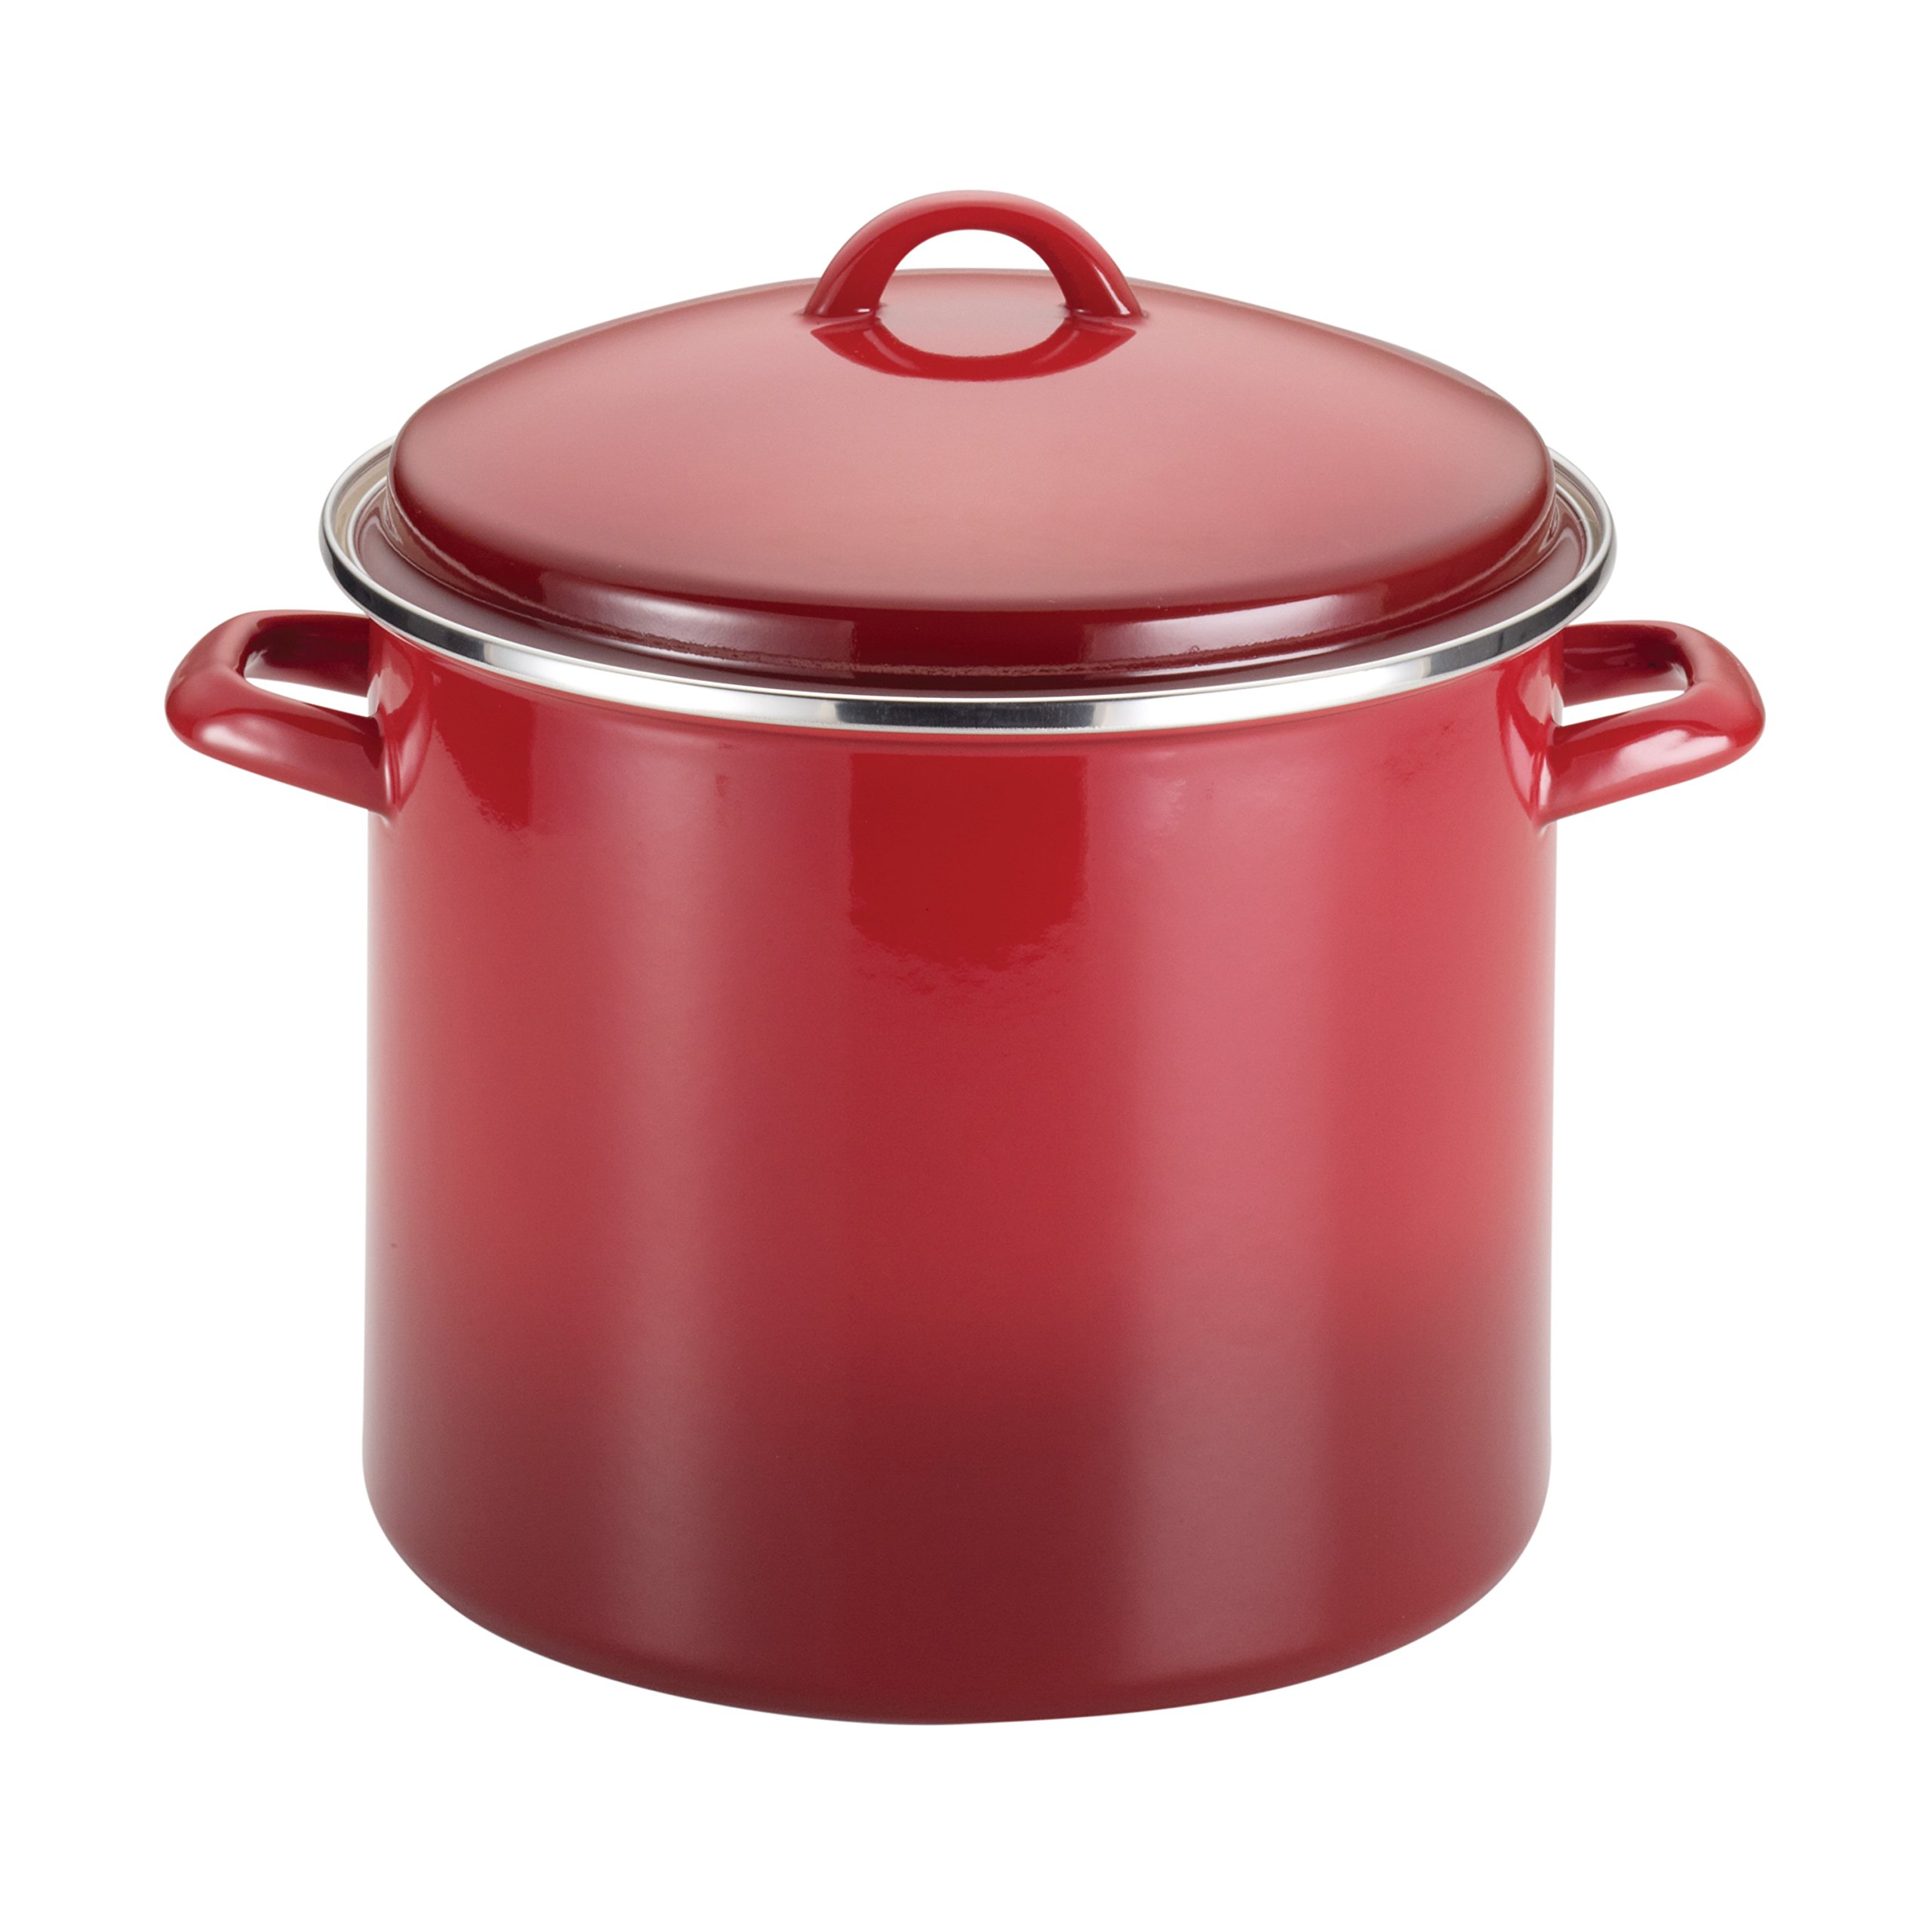 Rachael Ray 50497 12-Quart Covered, Red Gradient Enamel on Steel Stockpot,